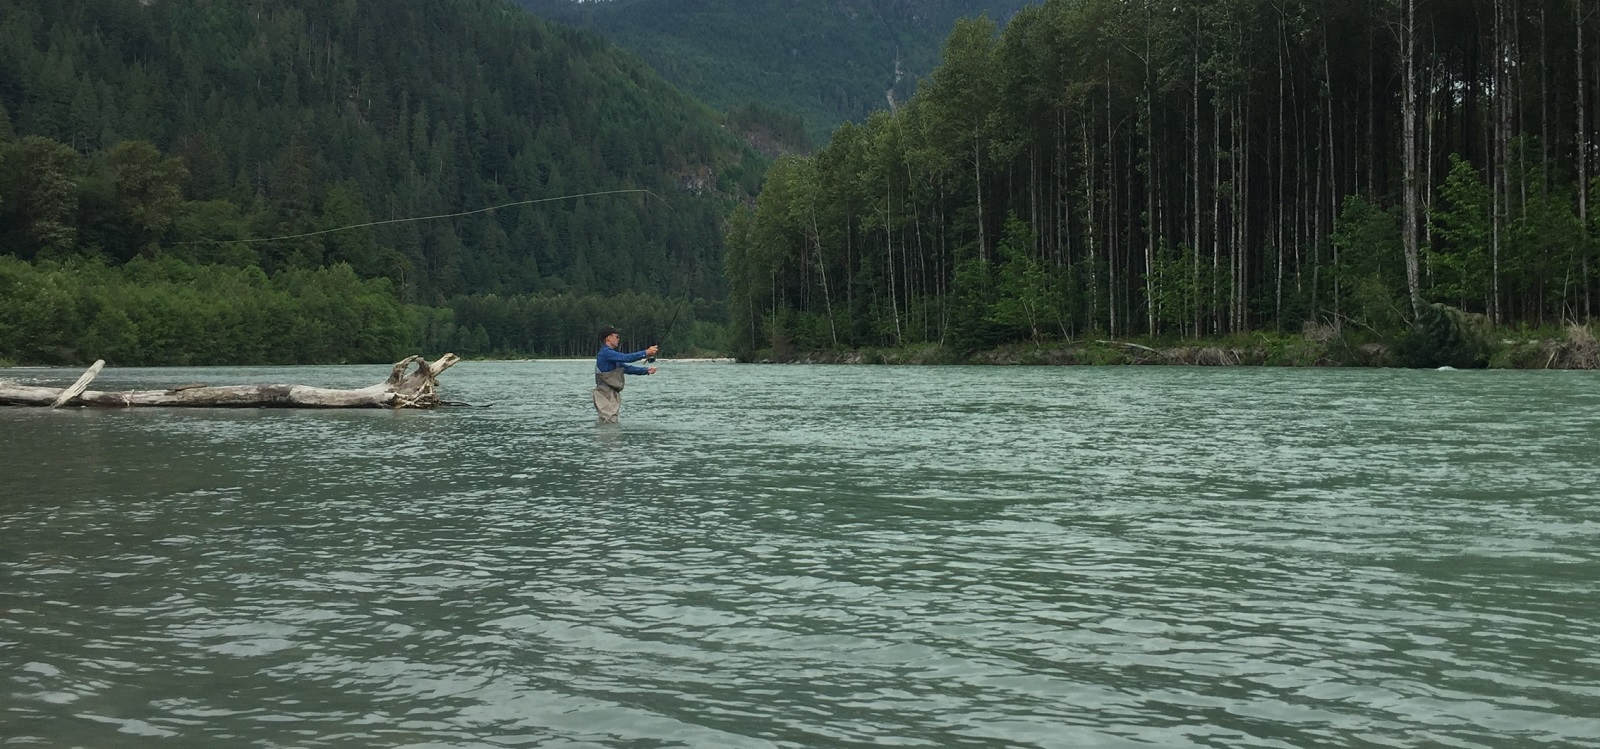 fly fishing vancouver, fly fishing guides vancouver, fly fishing bc, fly fishing guides bc, fly fishing whistler, trout fishing vancouver, steelhead fishing vancouver